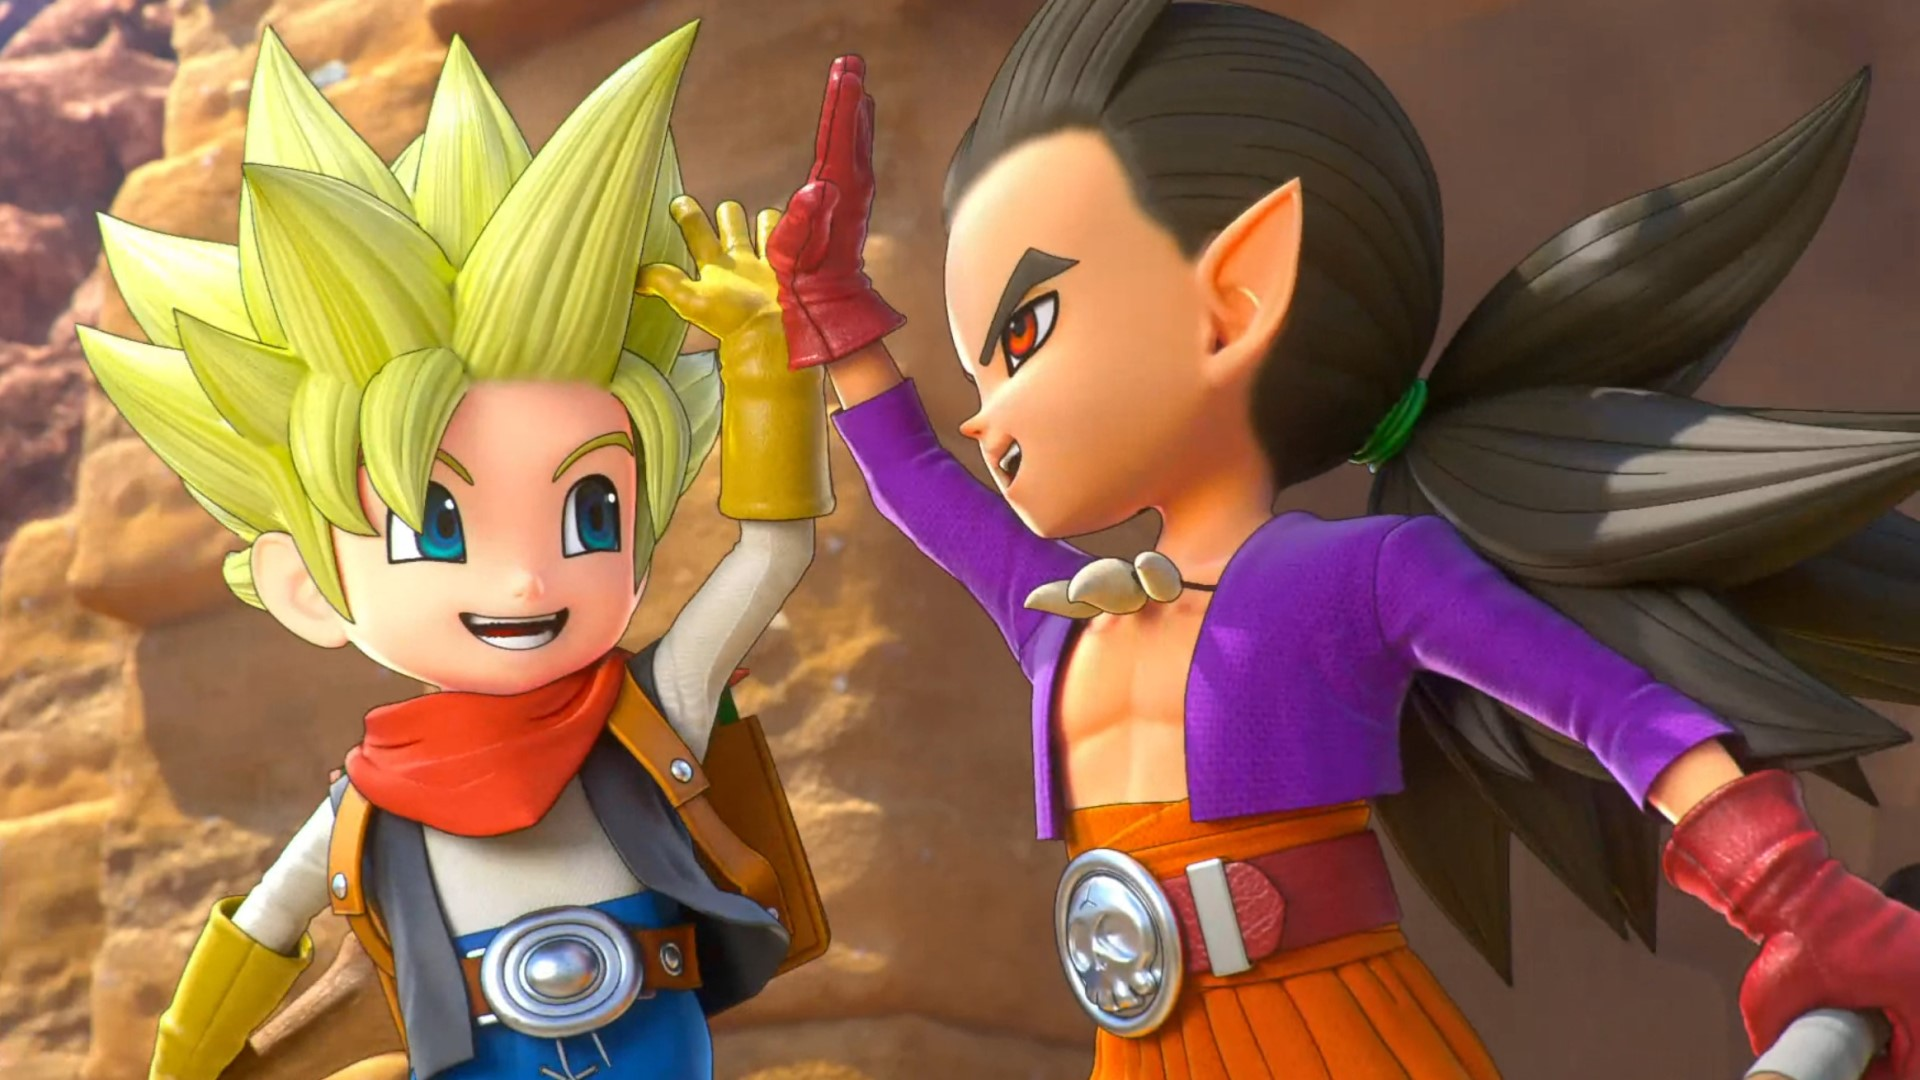 FIFA 21, Dragon Quest Builders 2 and more coming to Game Pass PC in May